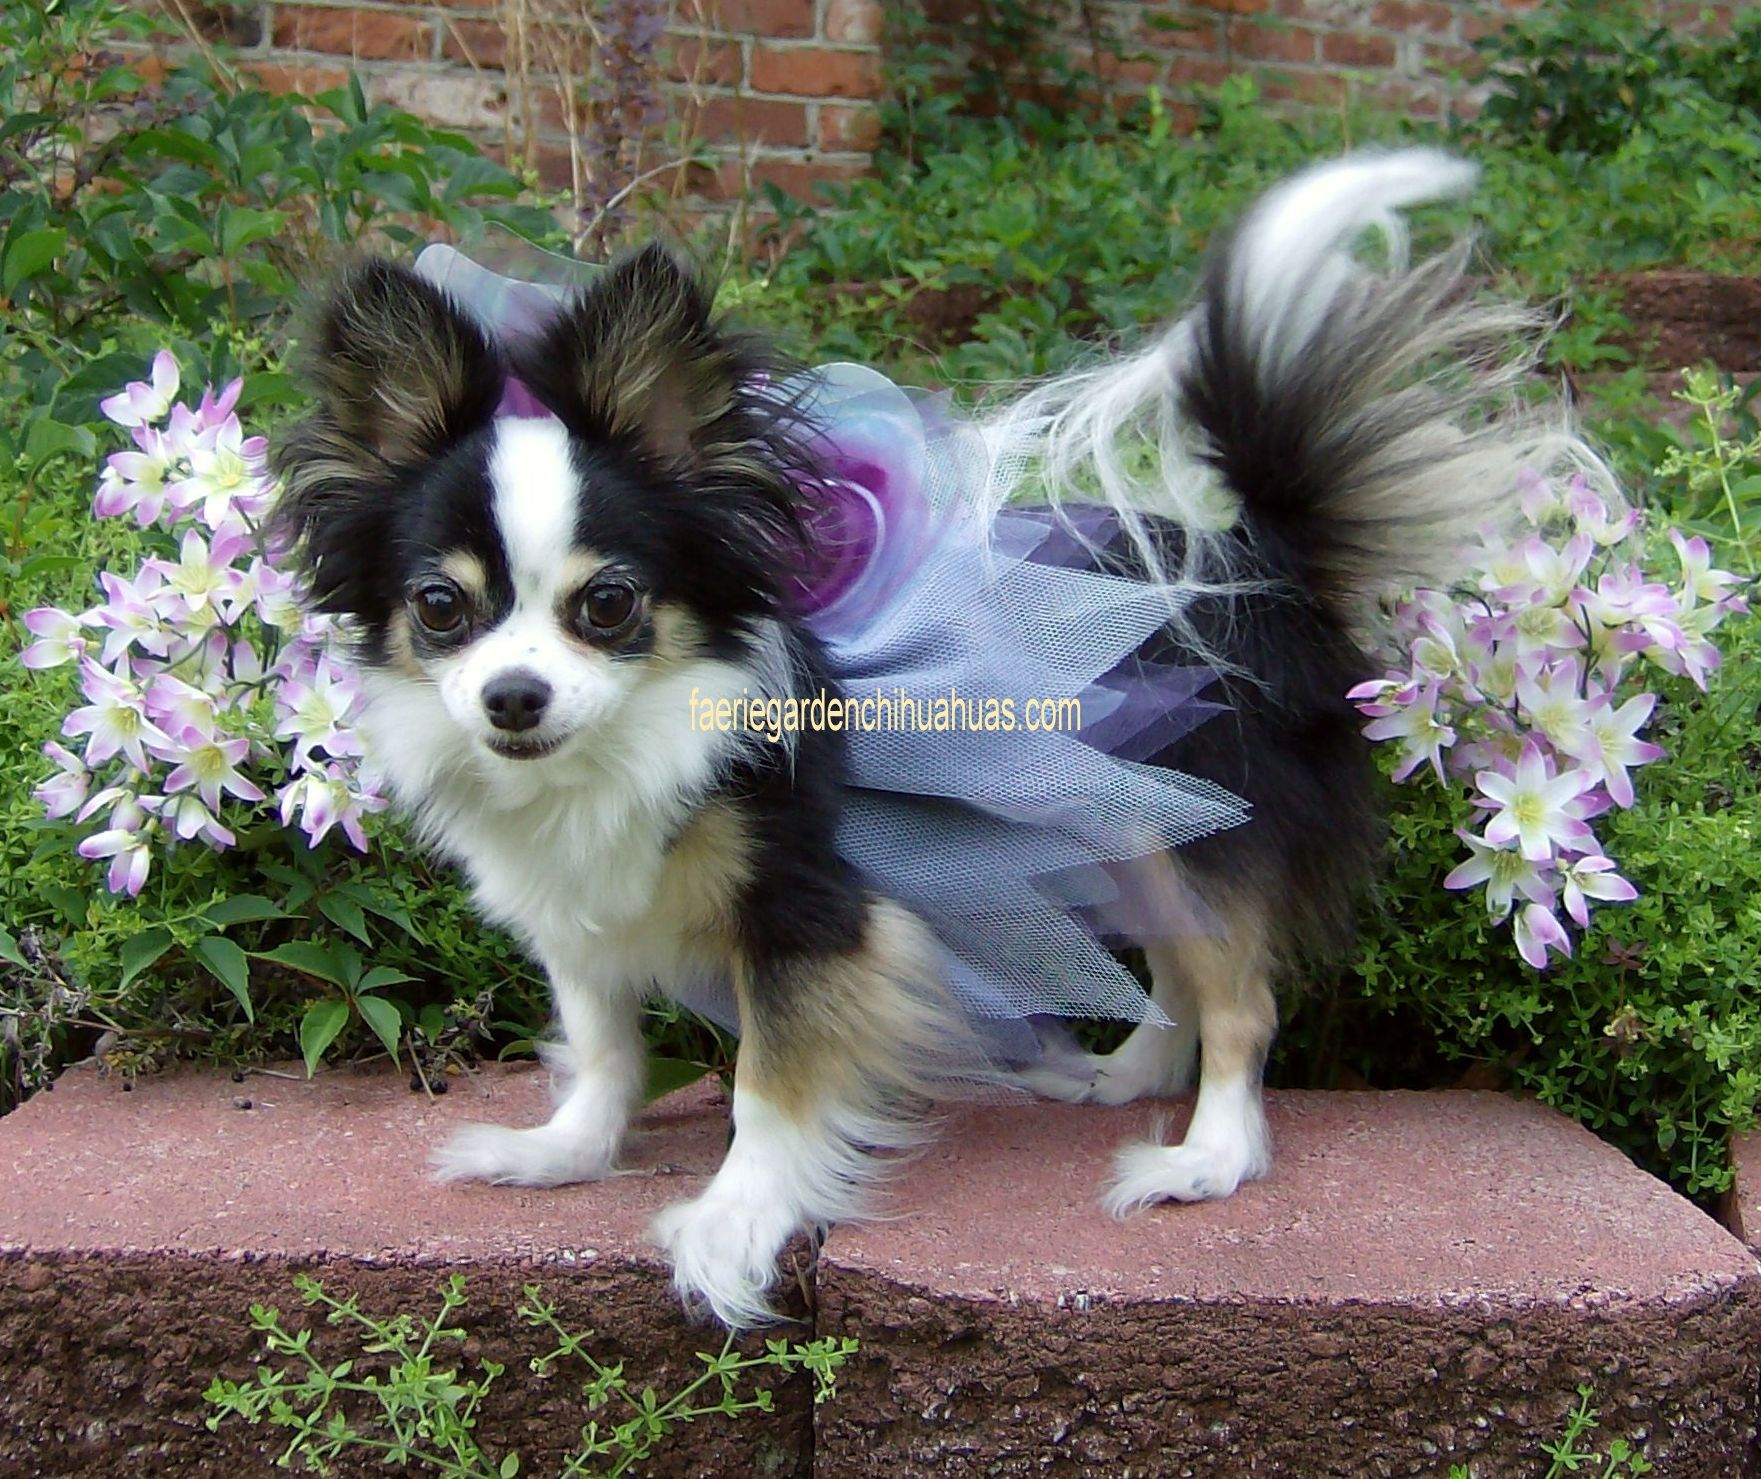 Violet From Faerie Garden Chihuahuas Chihuahua Chihuahua Lover